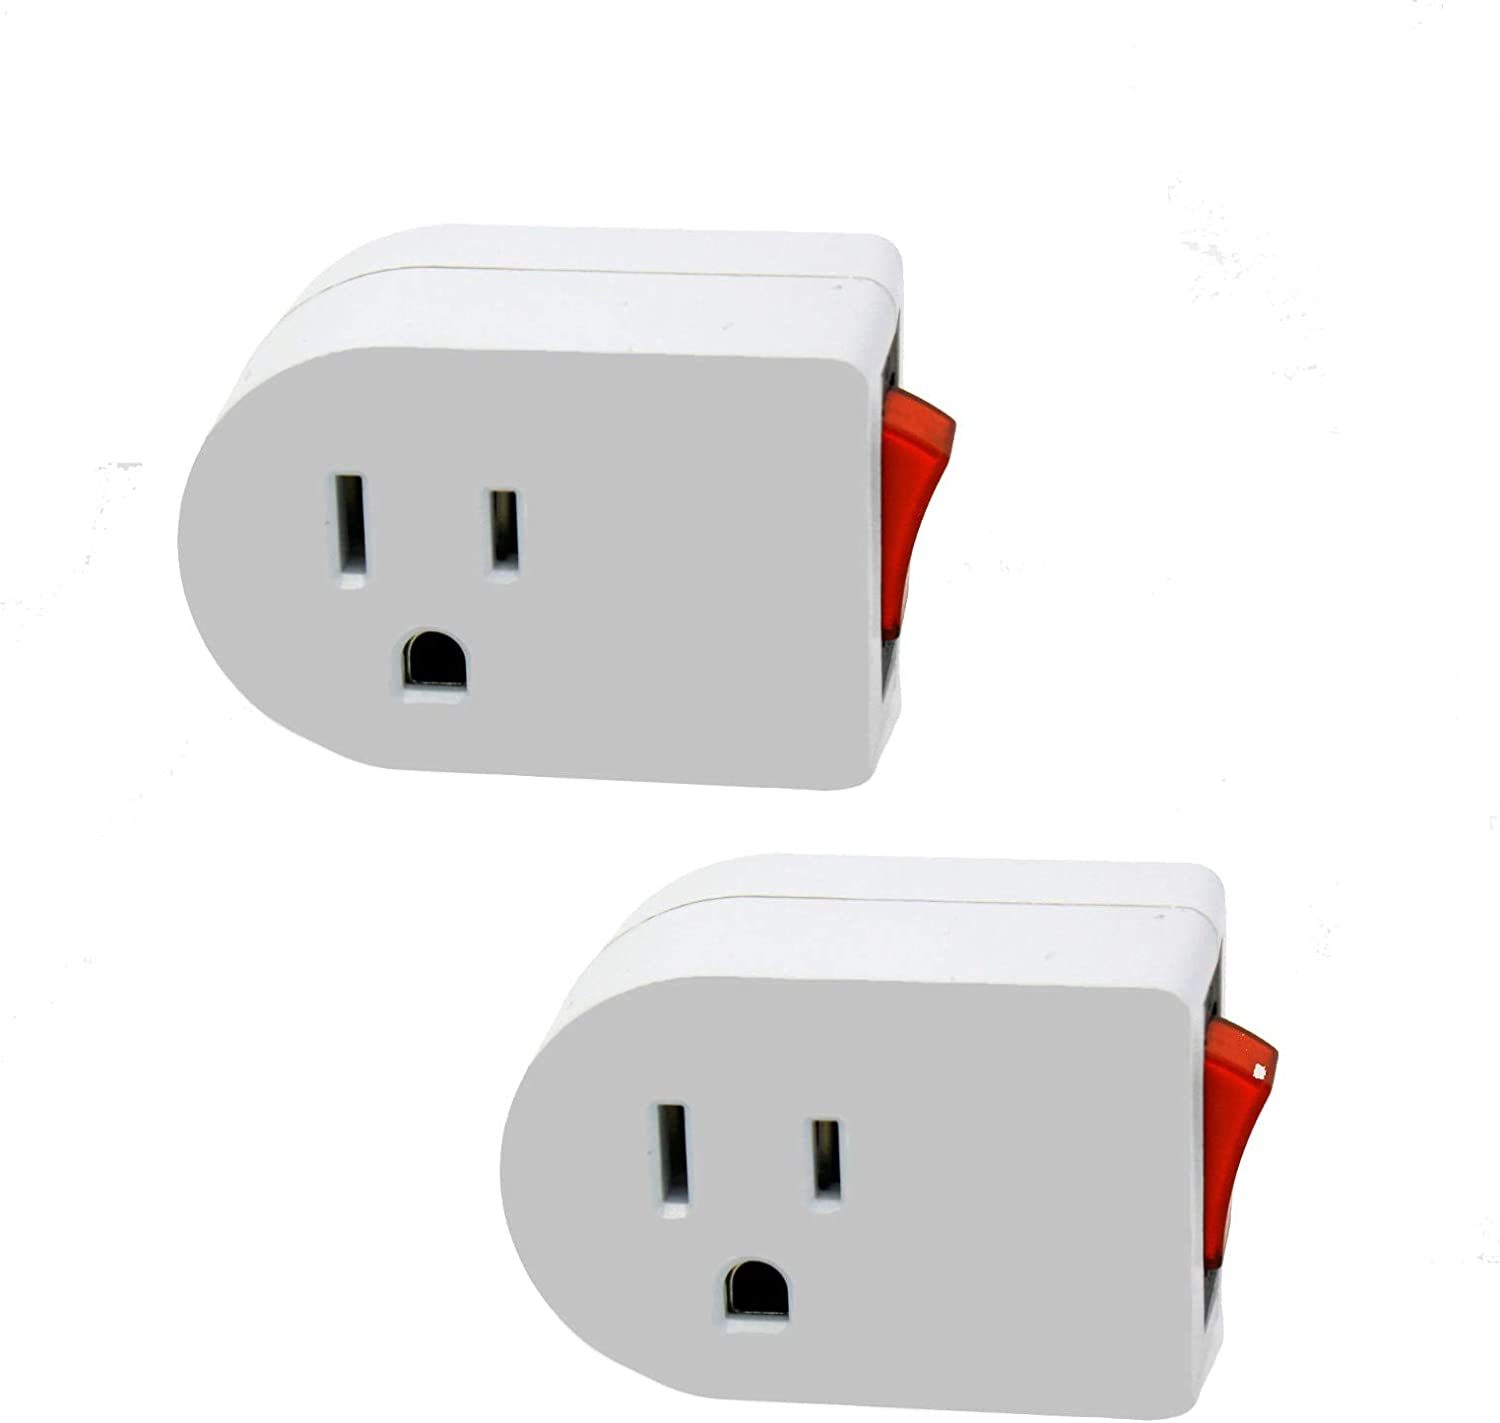 Wideskall White Grounded On/Off Power Switch with Red Light 3 Prong AC Wall Plug Tap Adapter ETL Certified (Pack of 2)